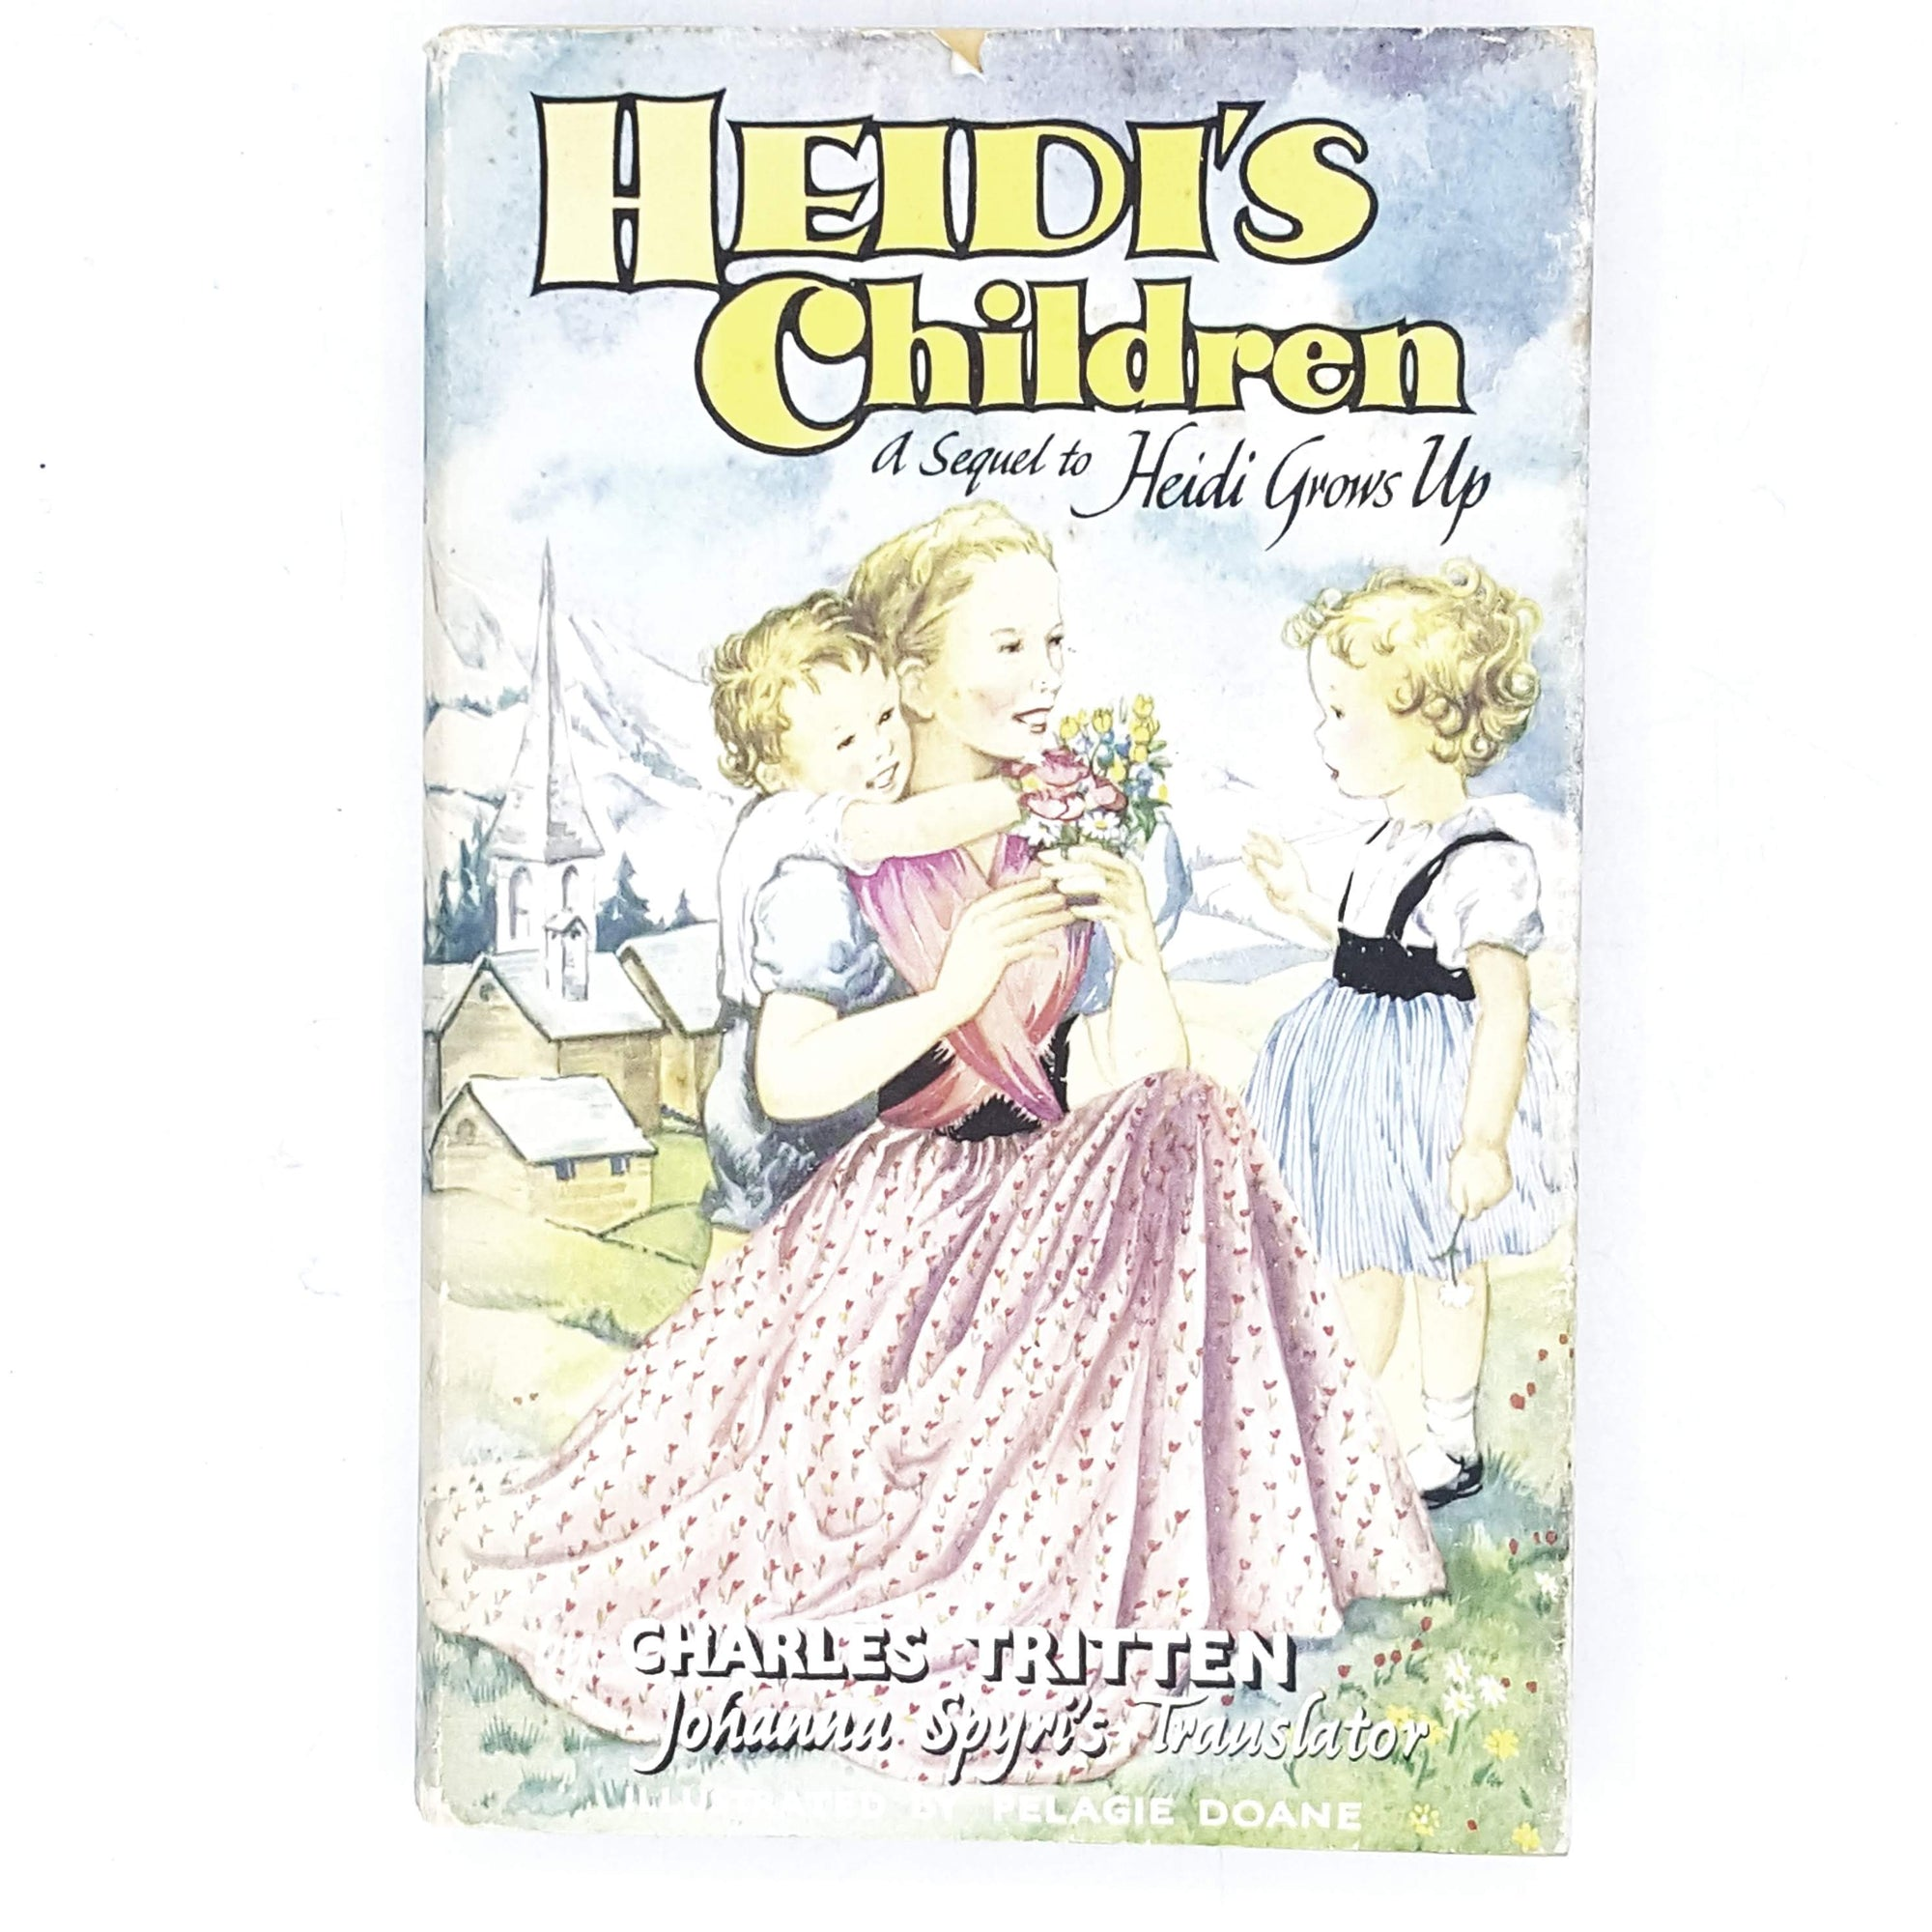 Heidi's Children by Charles Tritten 1970